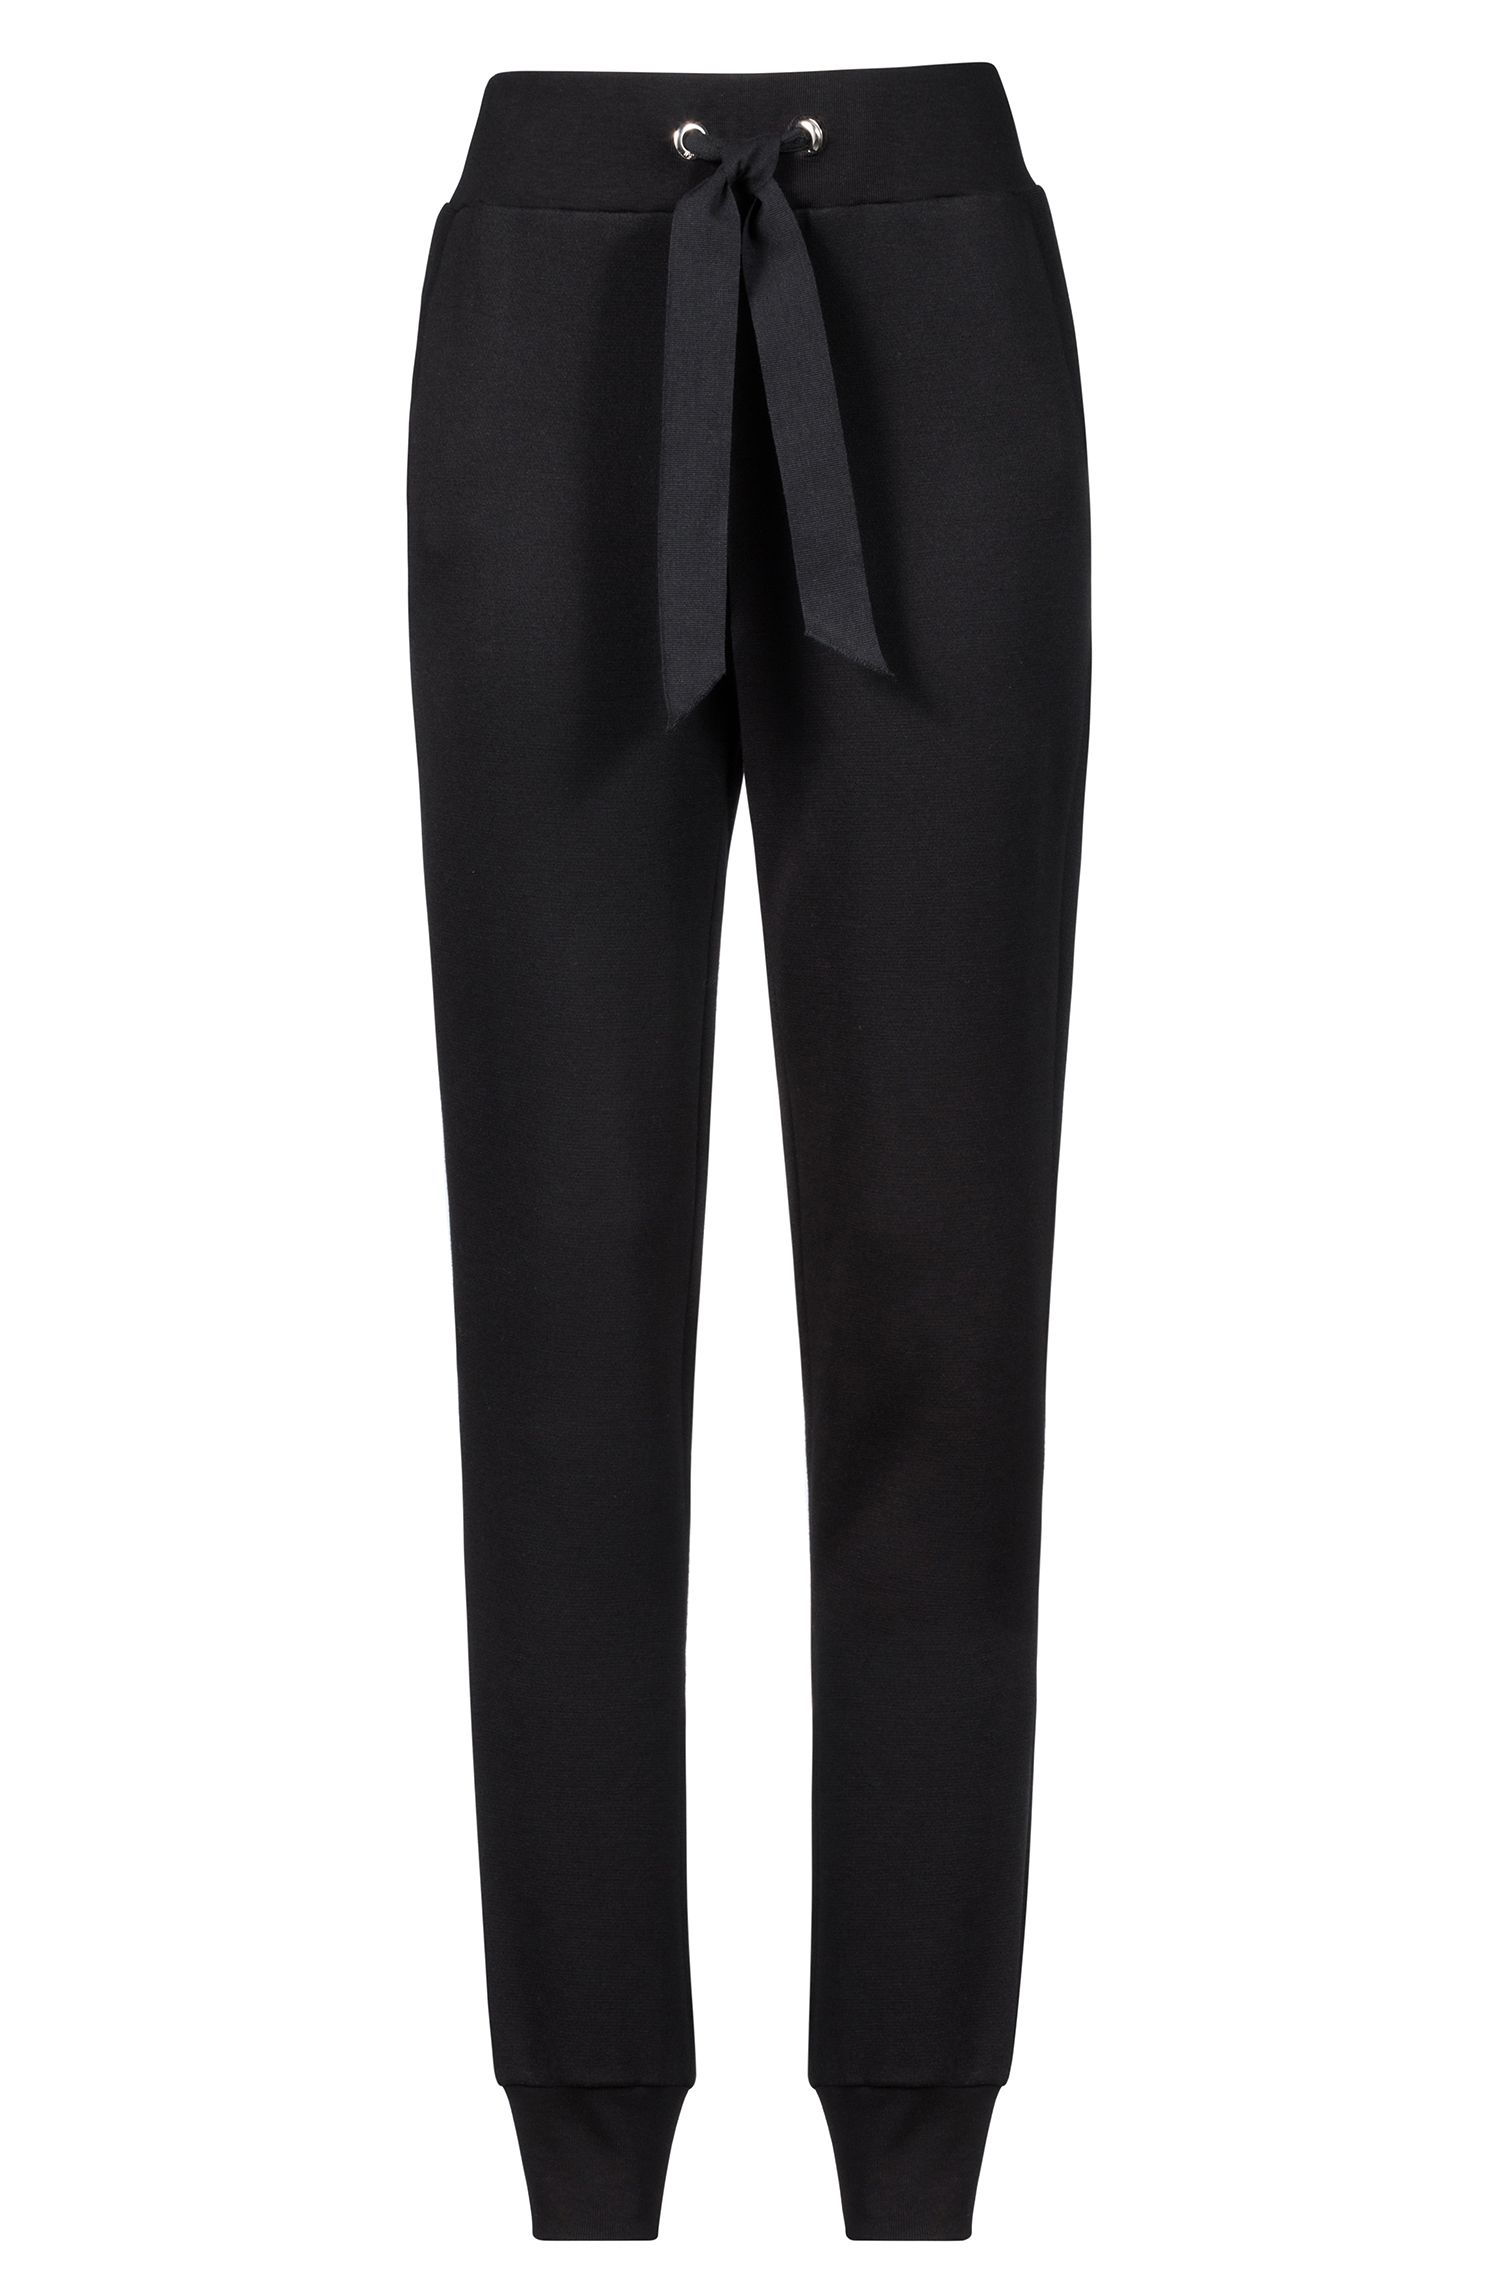 Slim-fit jersey trousers with tie-waist detail, Black